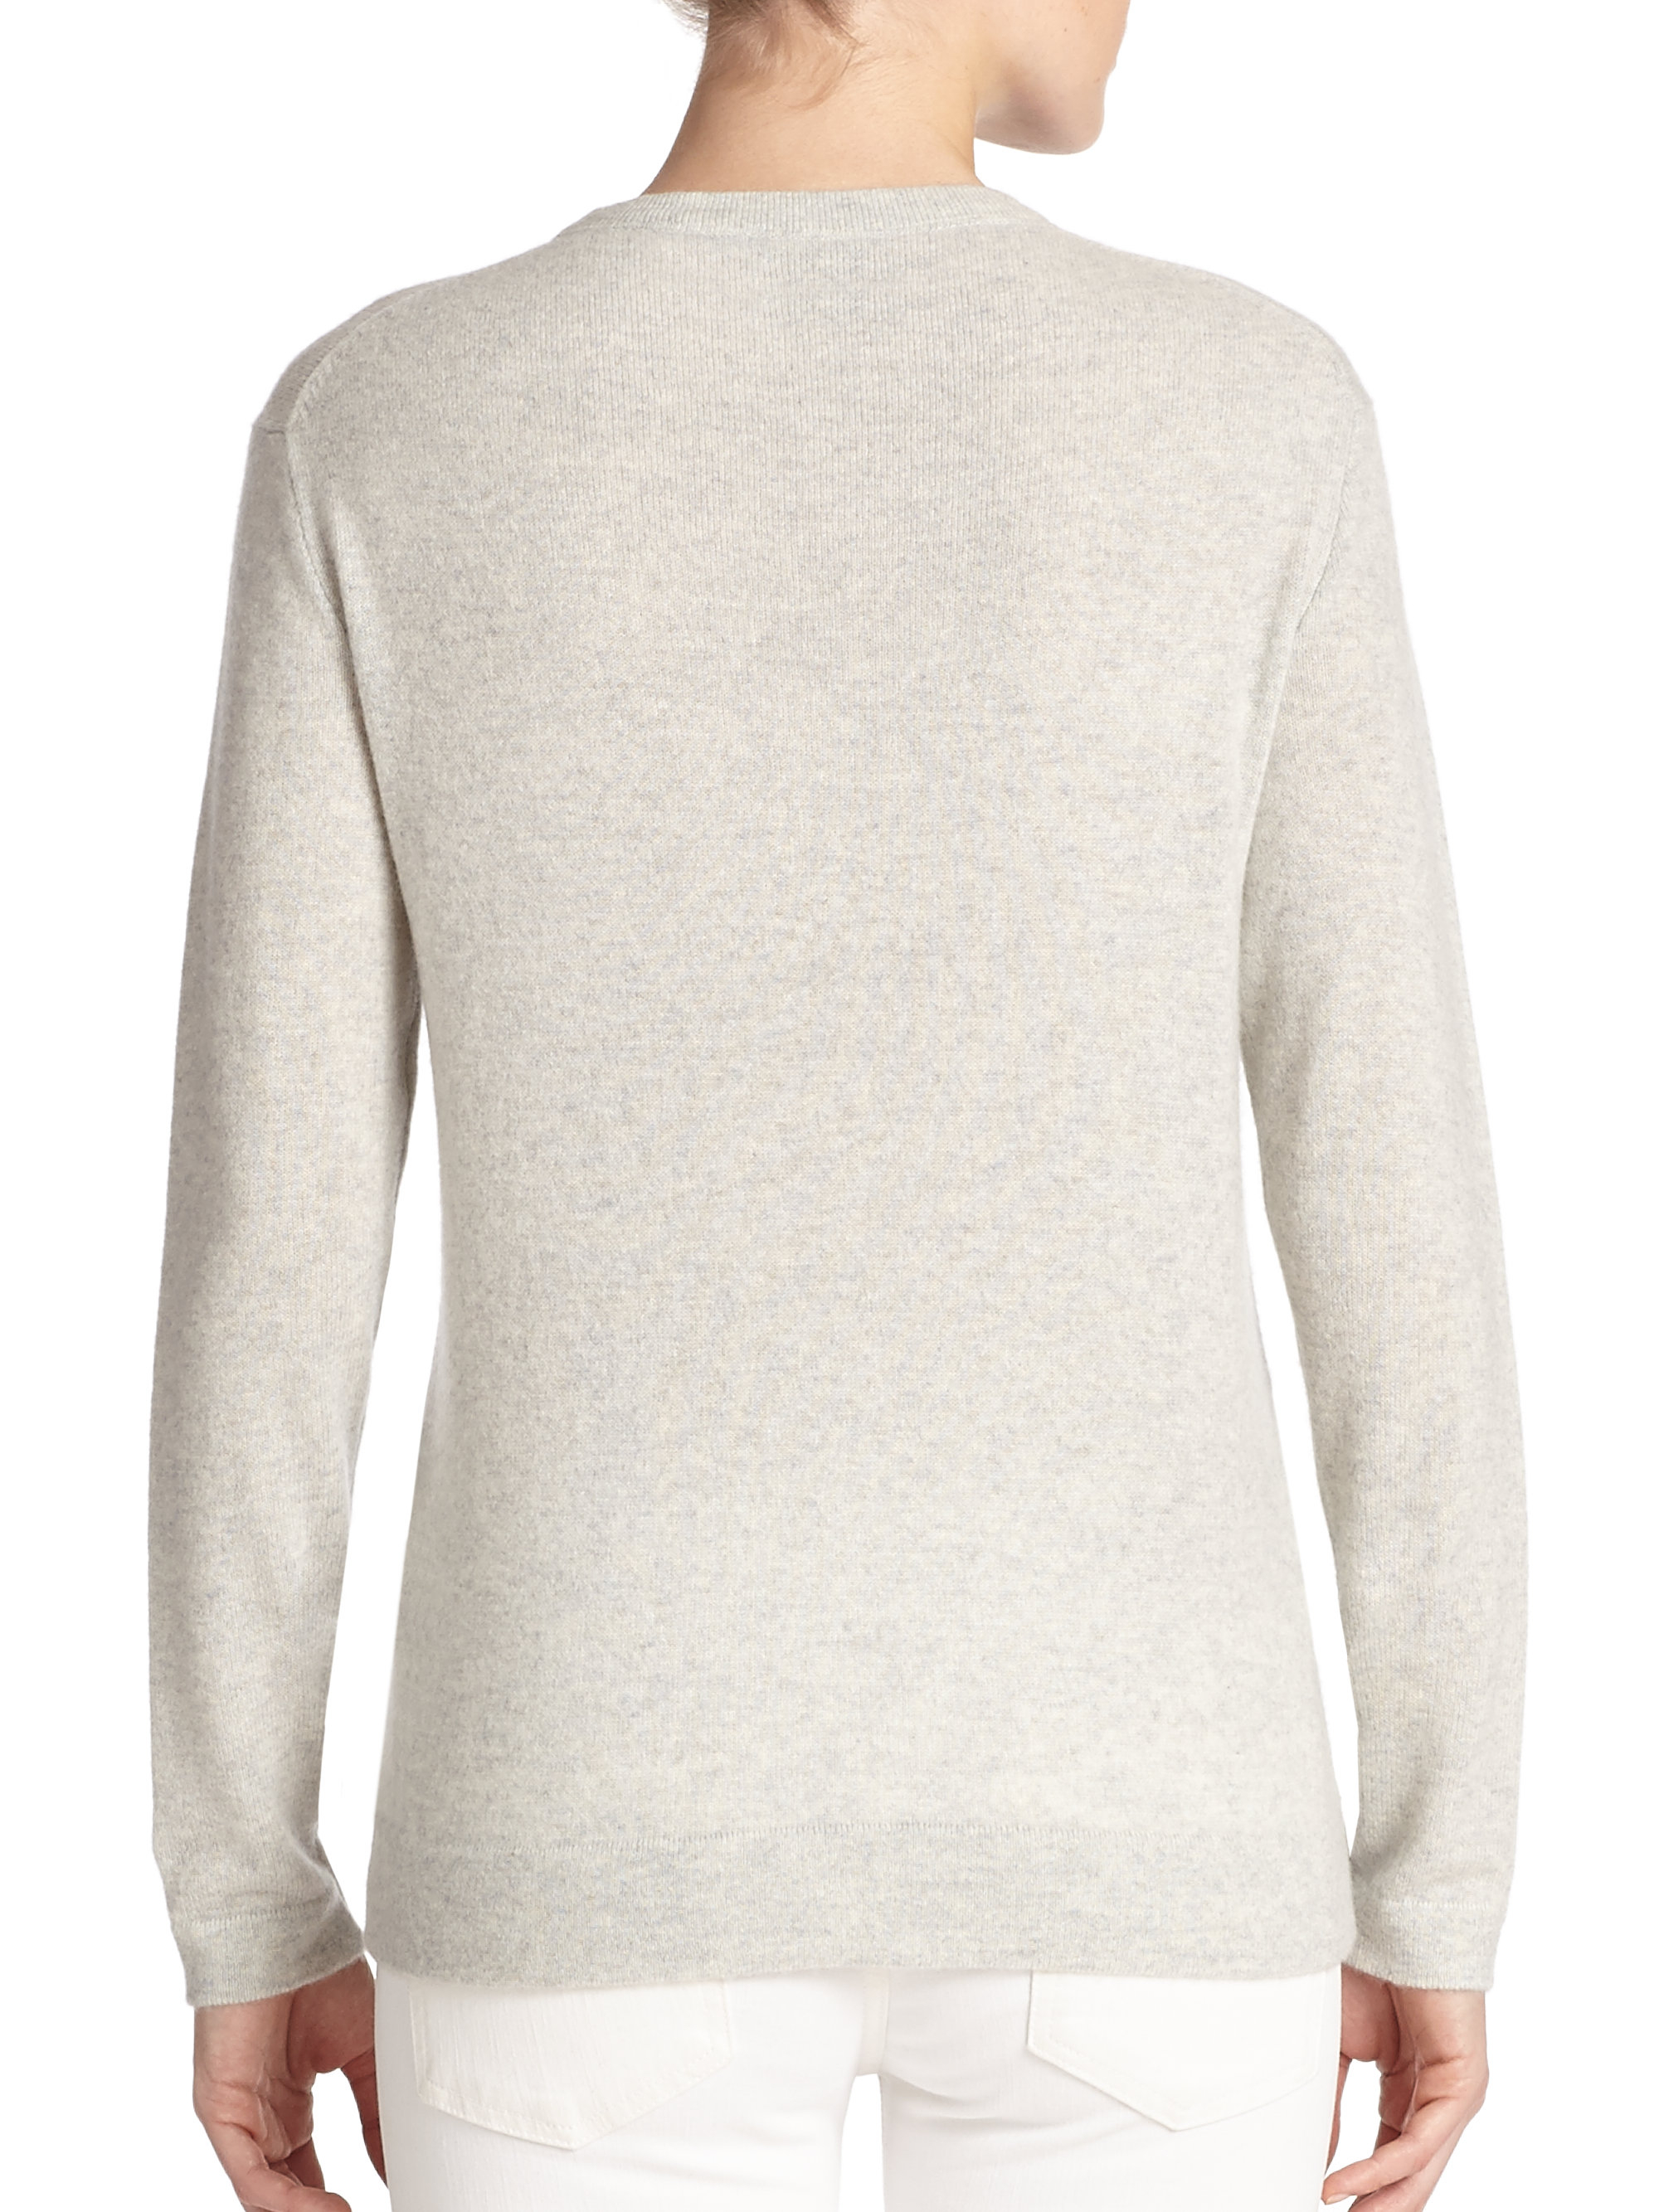 434118ed0595 Lyst - Polo Ralph Lauren Cashmere Crewneck Sweater in Gray